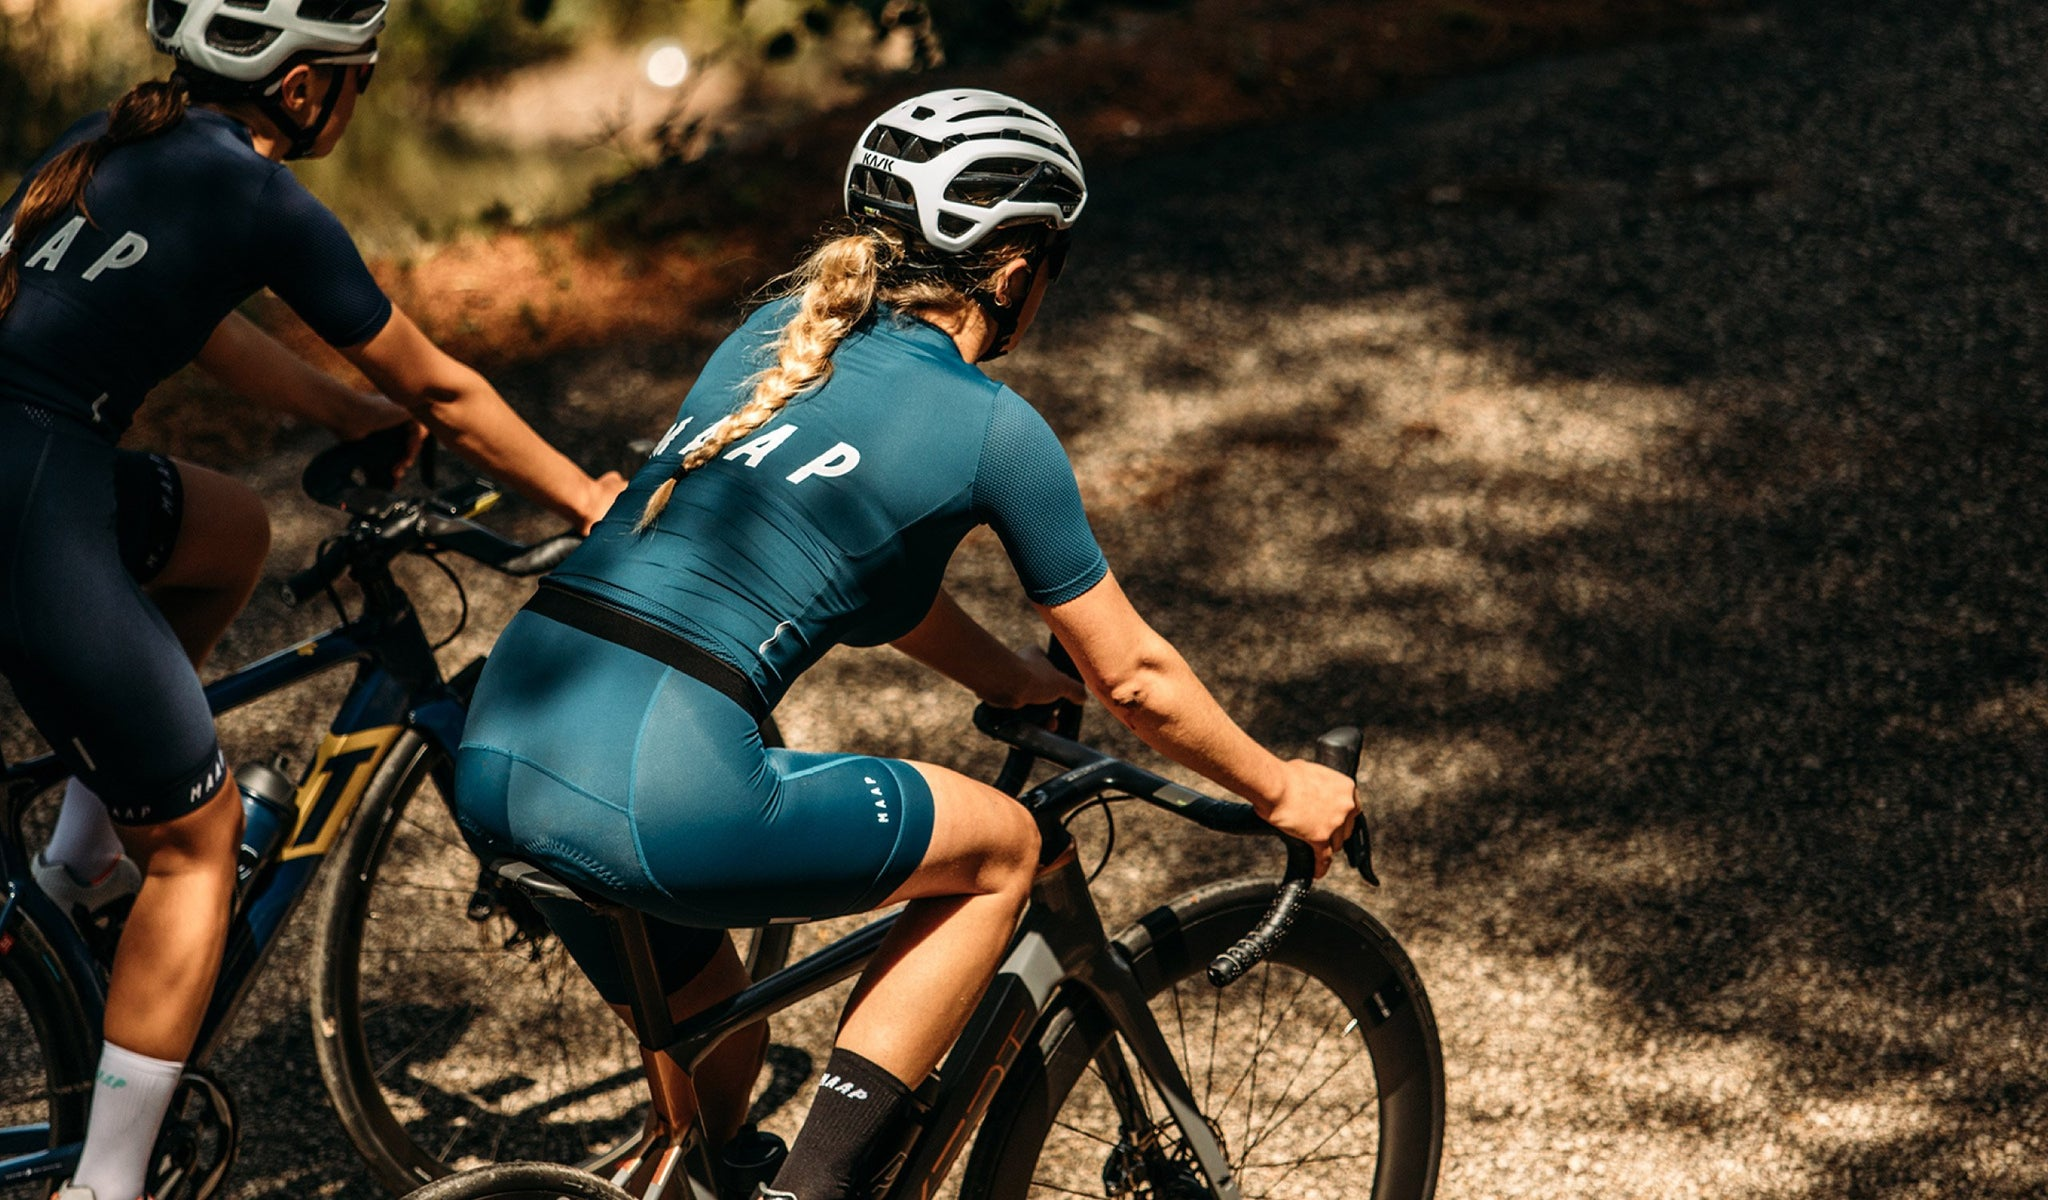 MAAP Women's Team Bib Shorts in Slate Blue for riding in warm weather conditions.